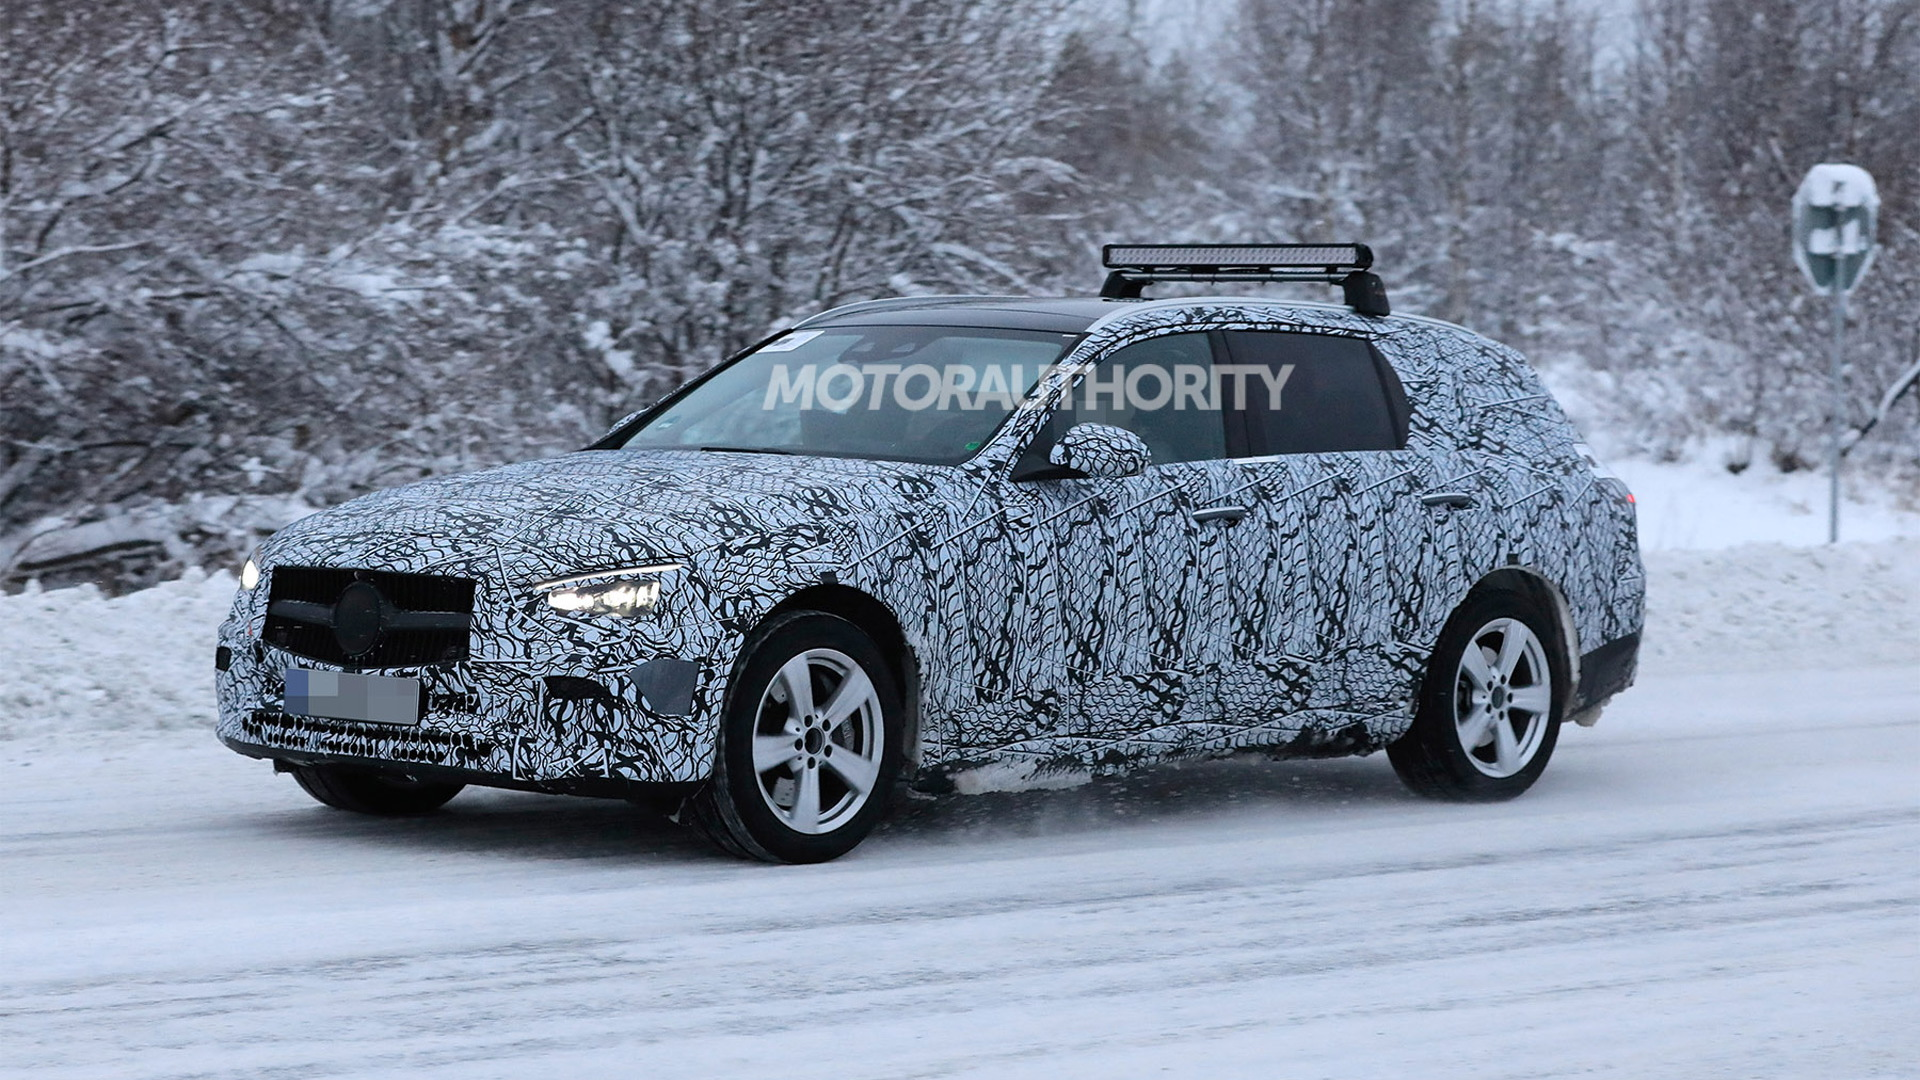 2022 Mercedes-Benz C-Class Wagon spy shots - Photo credit: S. Baldauf/SB-Medien